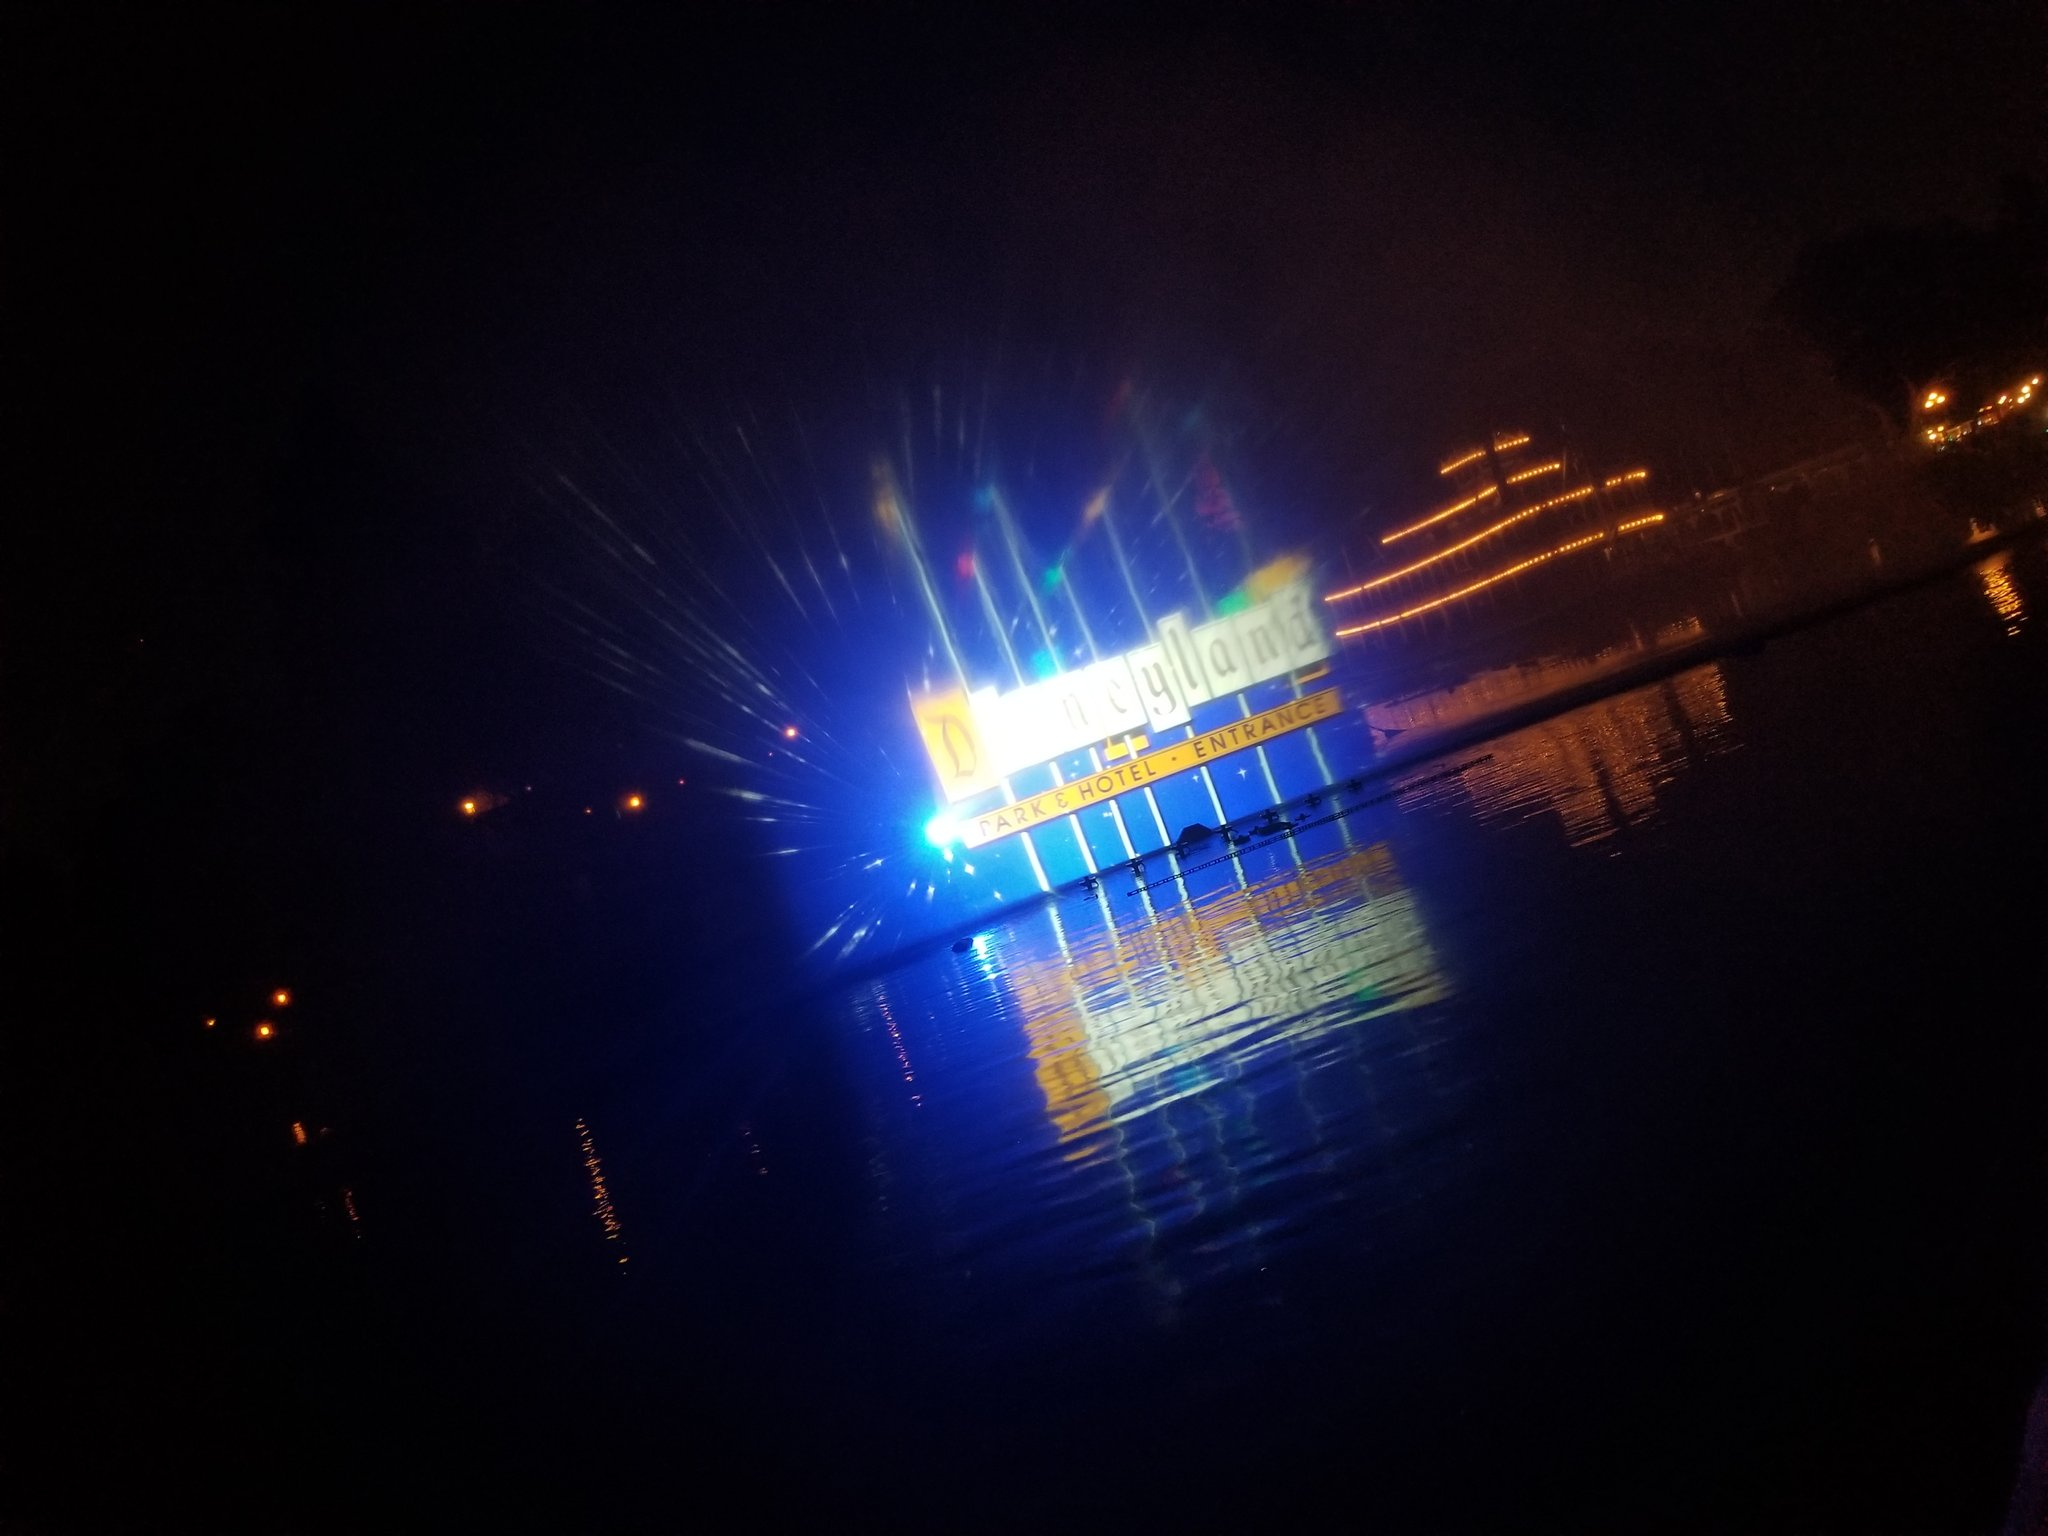 Water Screen testing tonight! Trying to do fireworks, but we'll see - been 12 minutes now. Projections are crazy sharp. https://t.co/8RiXuUsn5B